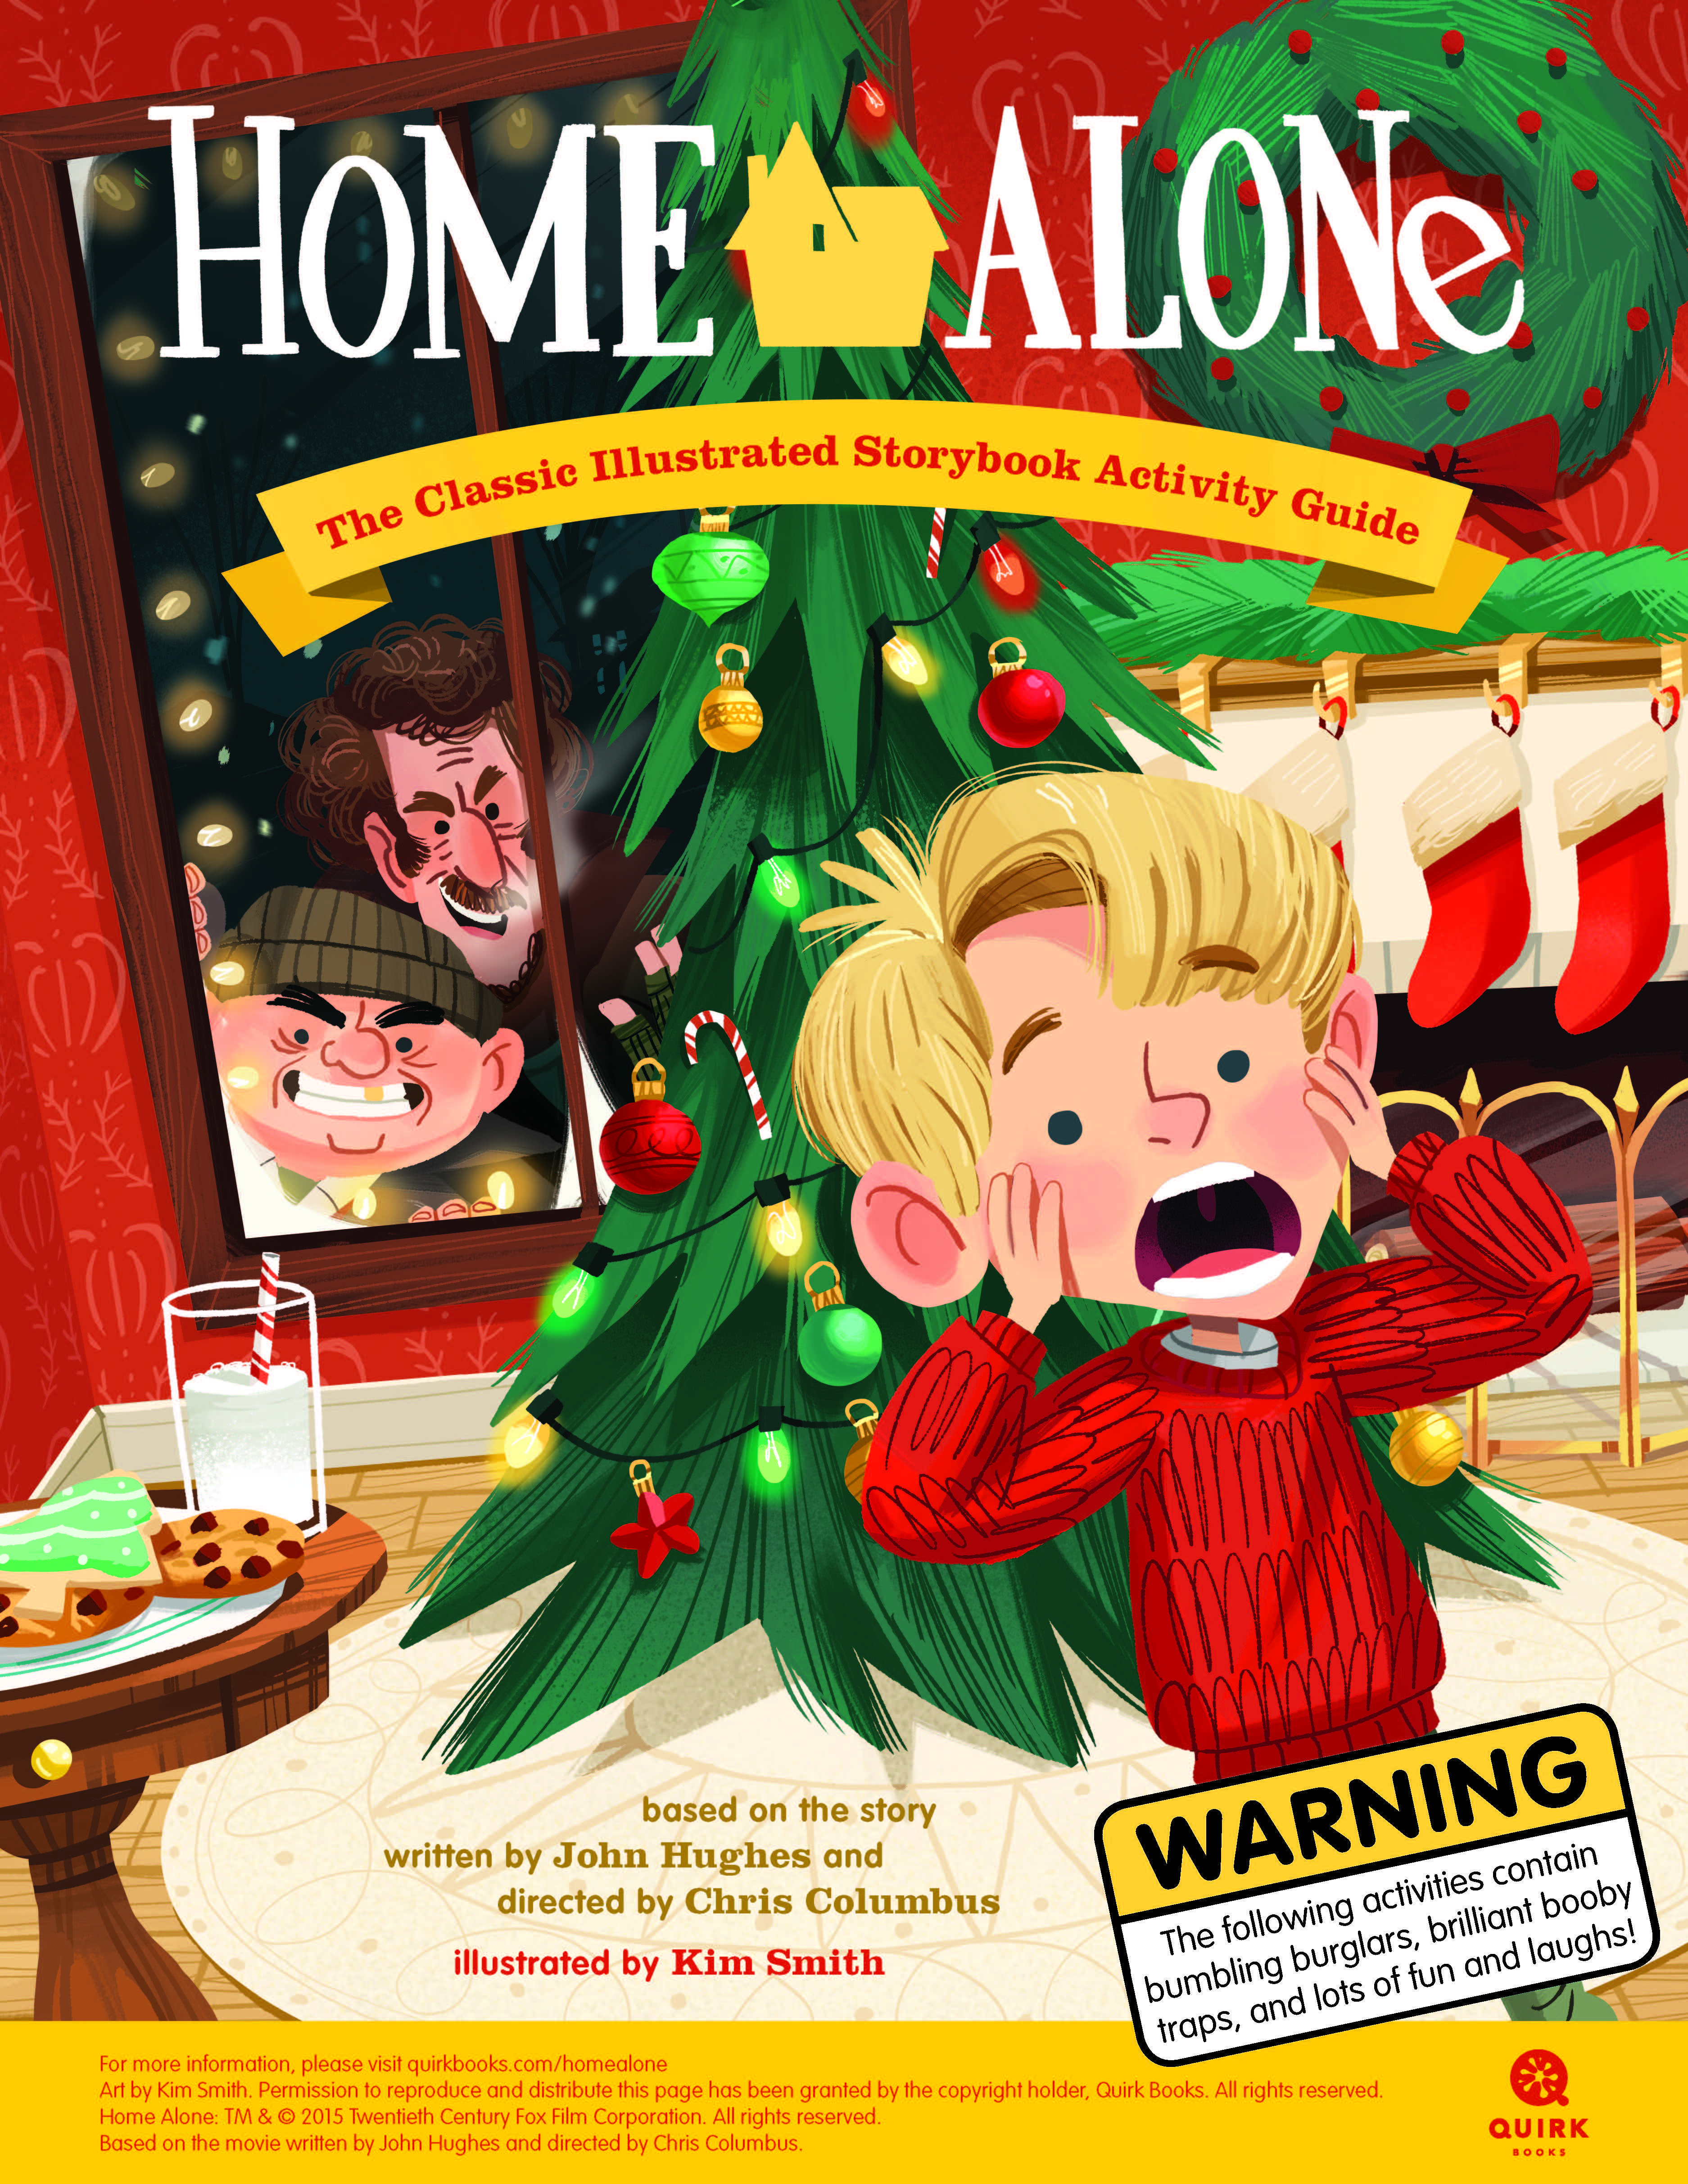 Home Alone: The Classic Illustrated Storybook Activity Guide ...